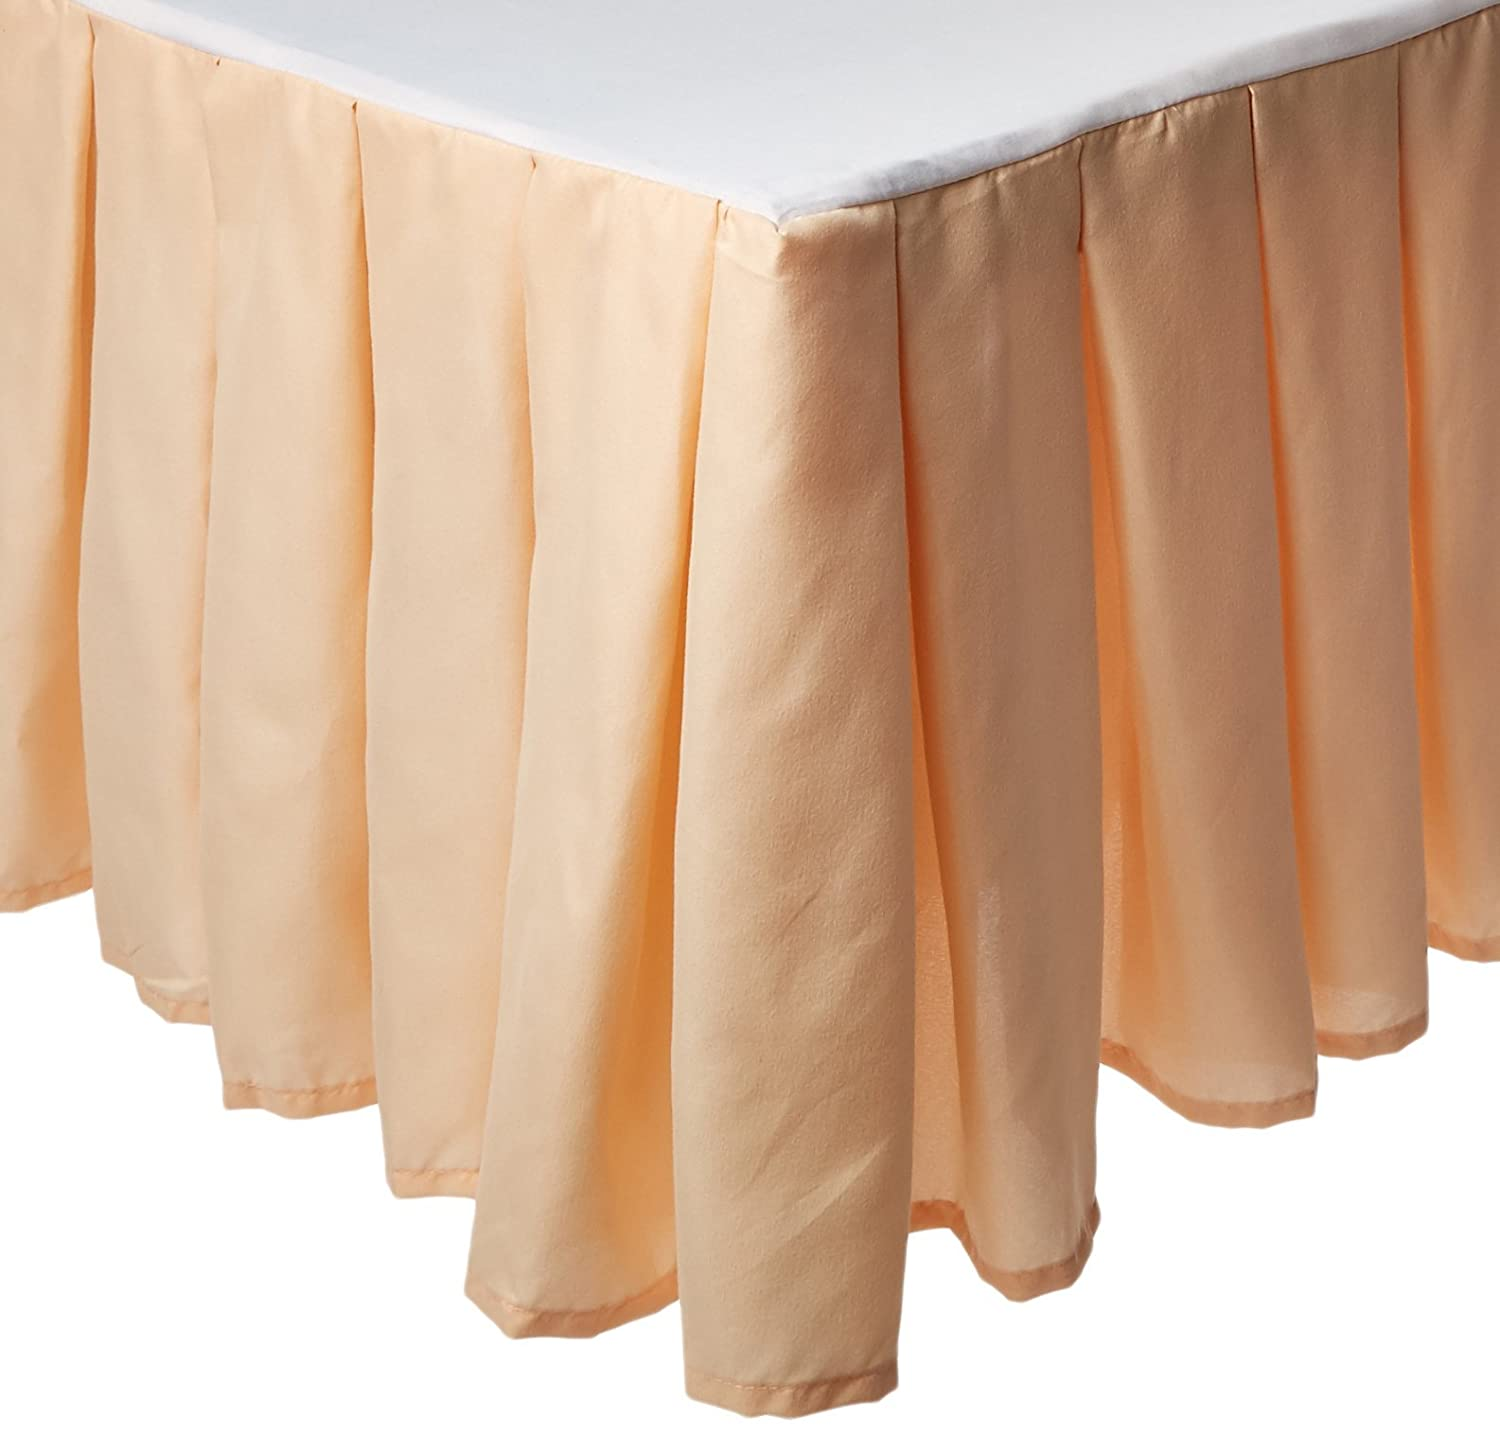 Serenta 14 Drop Microfiber Dust Ruffle Bed Skirt, King Grey BNF Home SSBEDSKIRT-K-LBlue